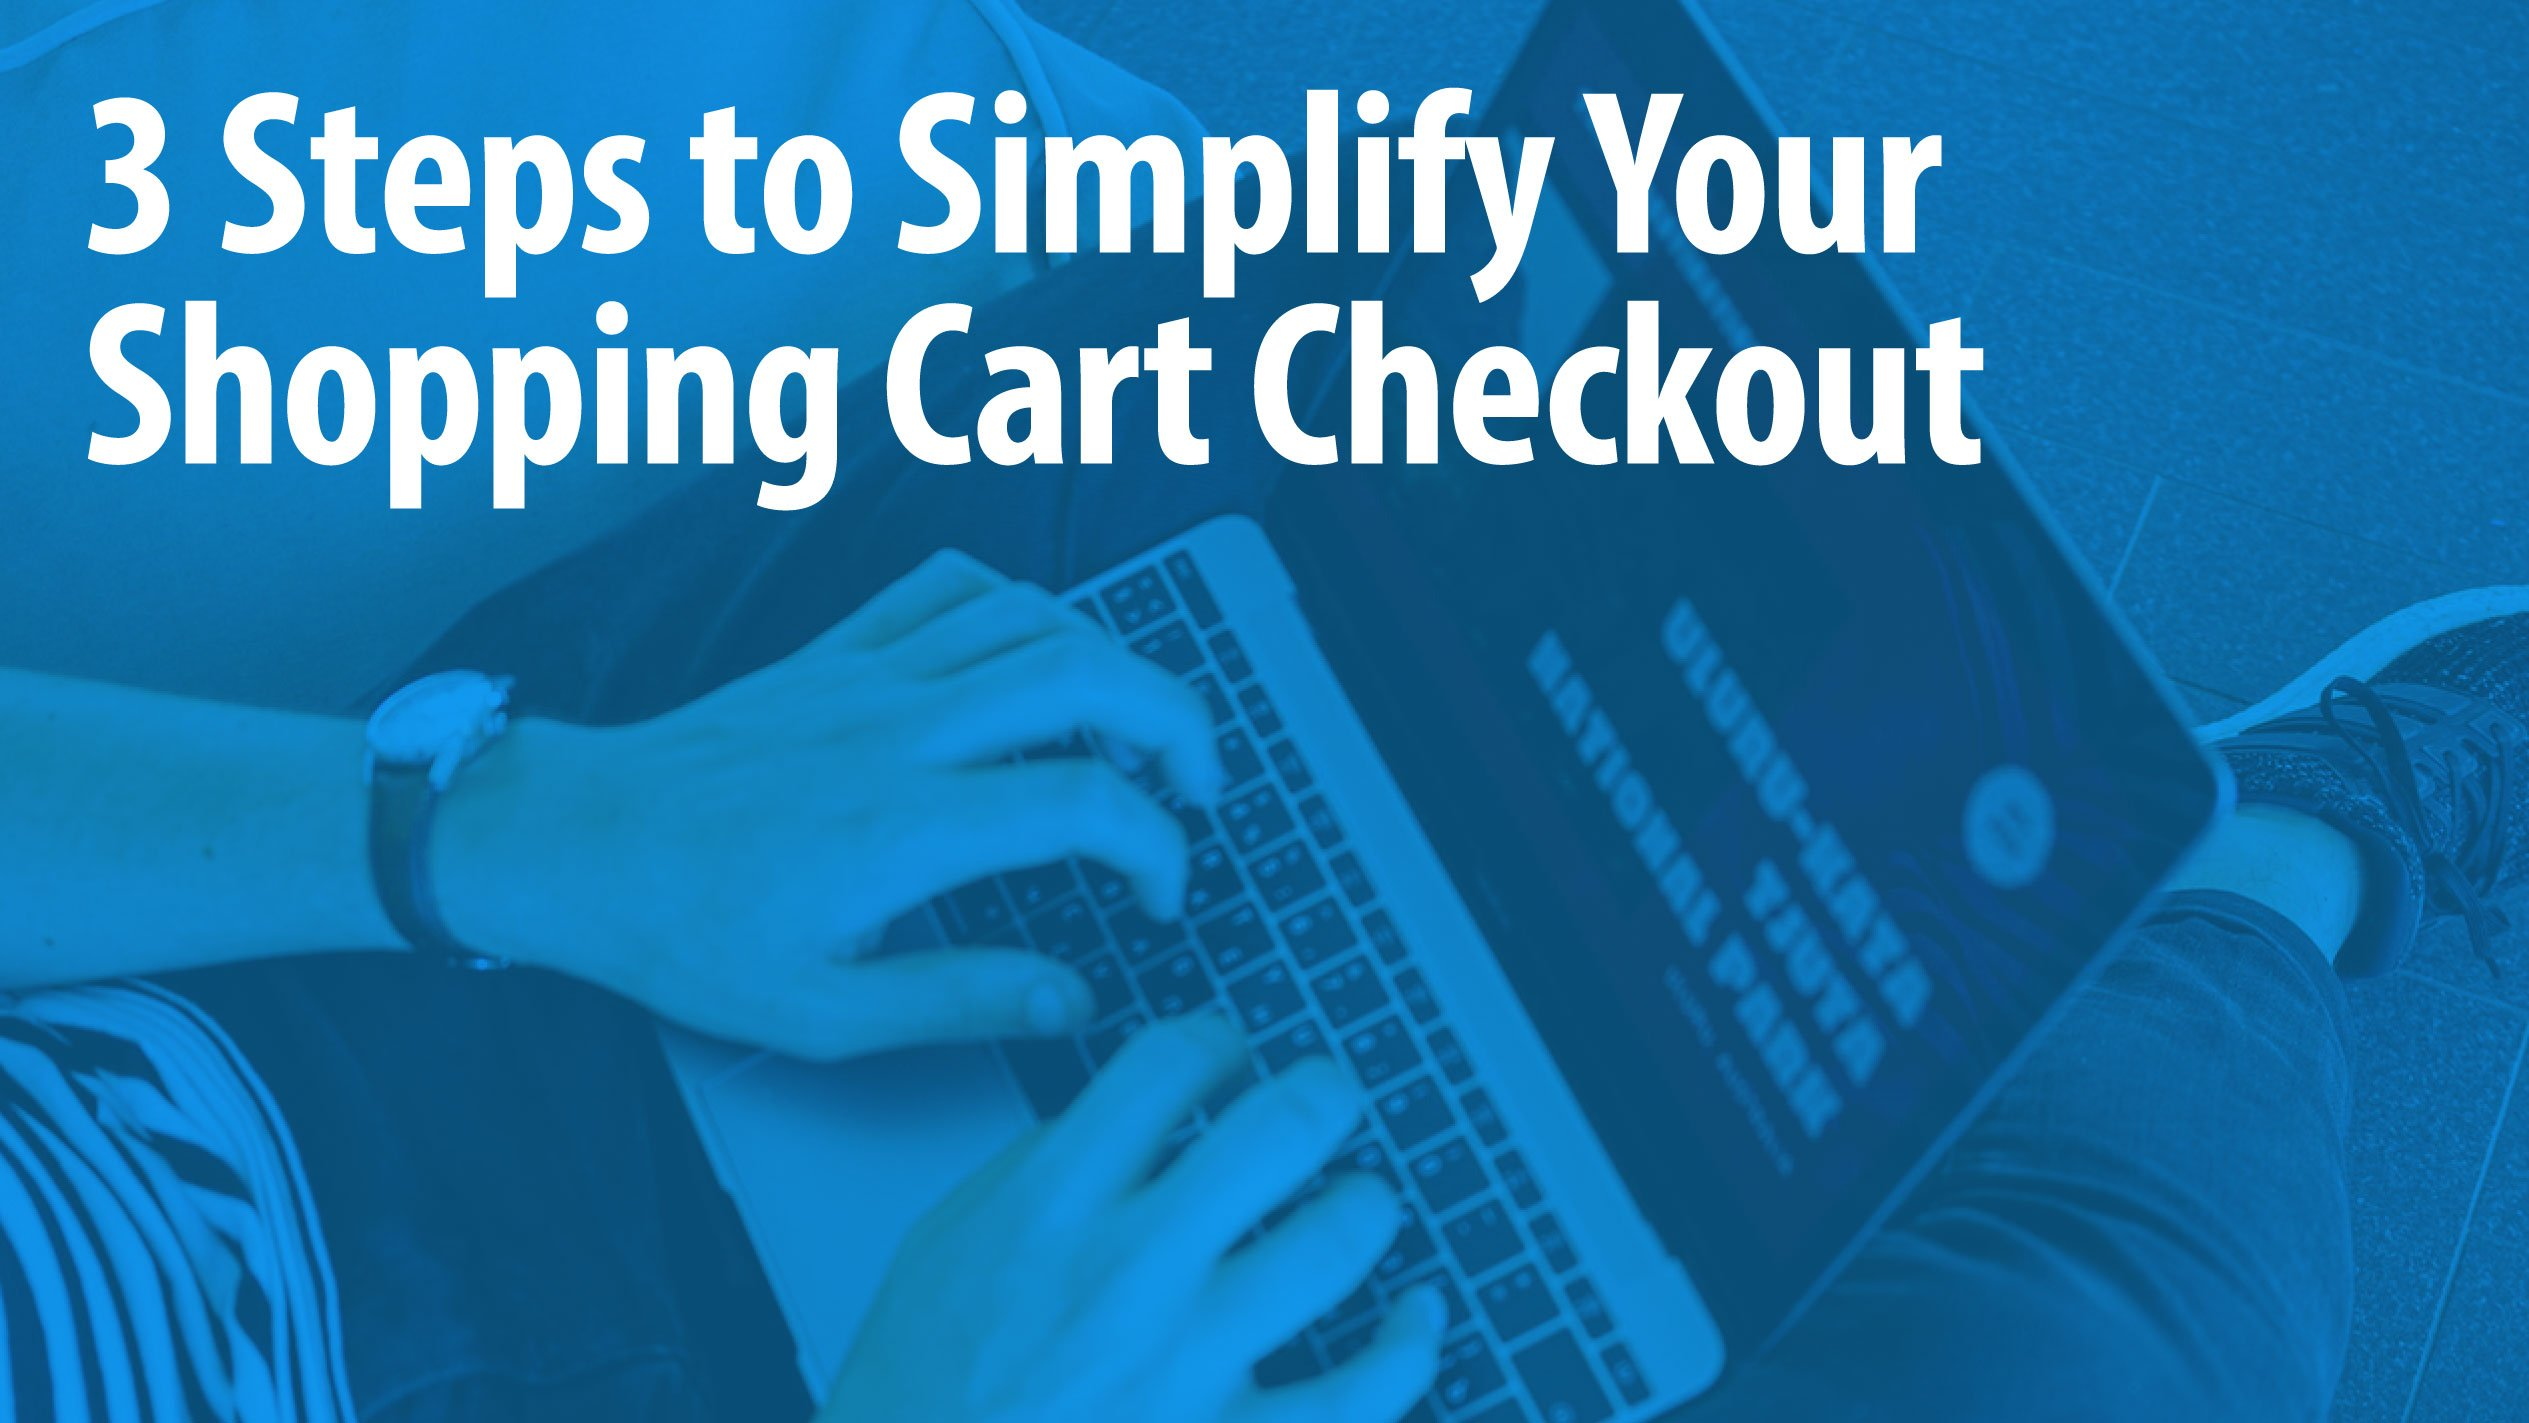 3 Steps to Simplify Your Shopping Cart Checkout